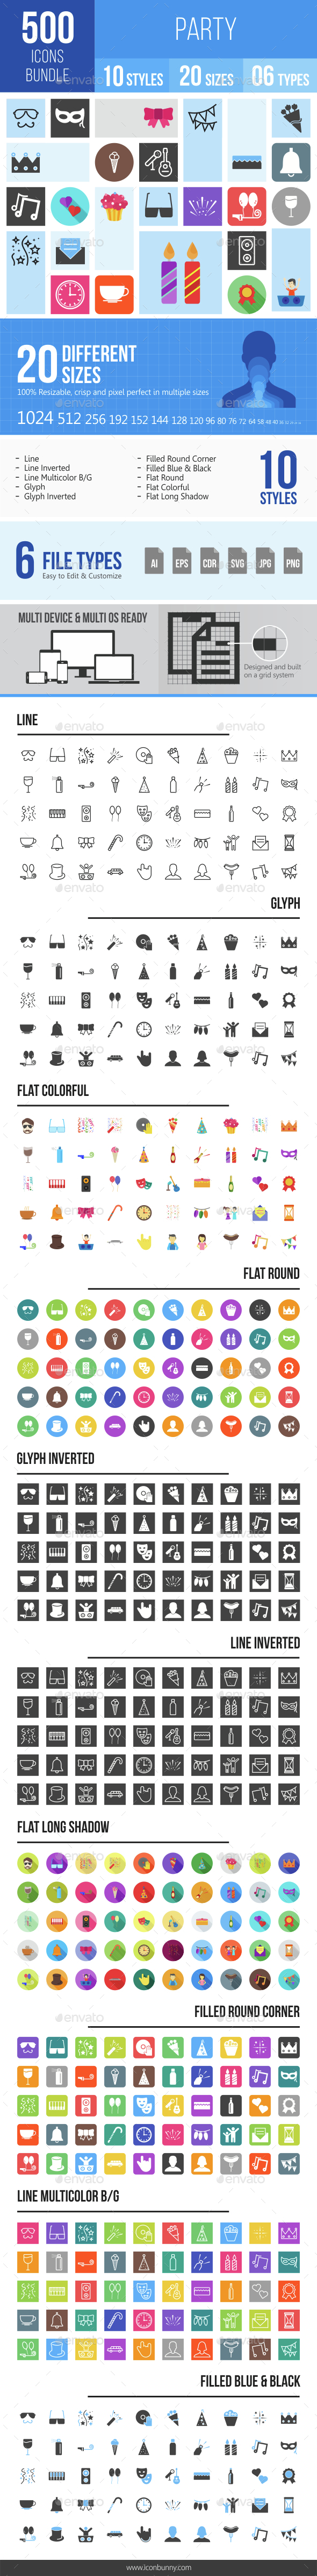 500 Party Icons Bundle - Icons